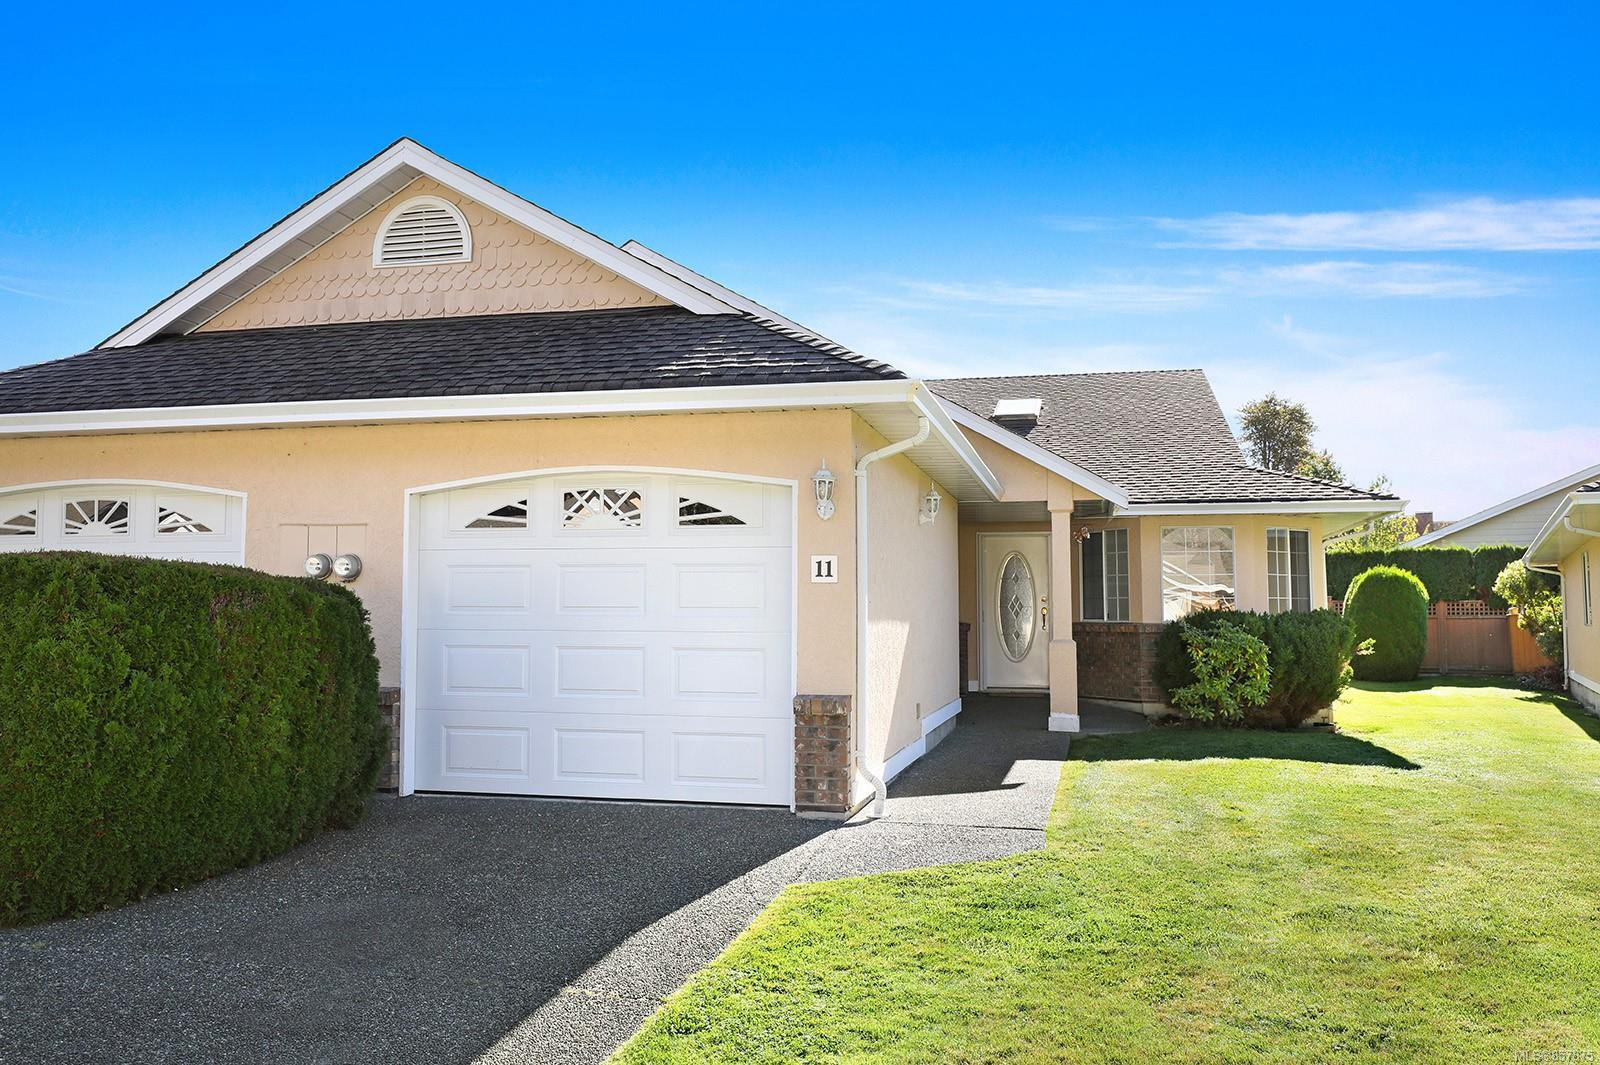 Main Photo: 11 20 Anderton Ave in : CV Courtenay City Row/Townhouse for sale (Comox Valley)  : MLS®# 857875